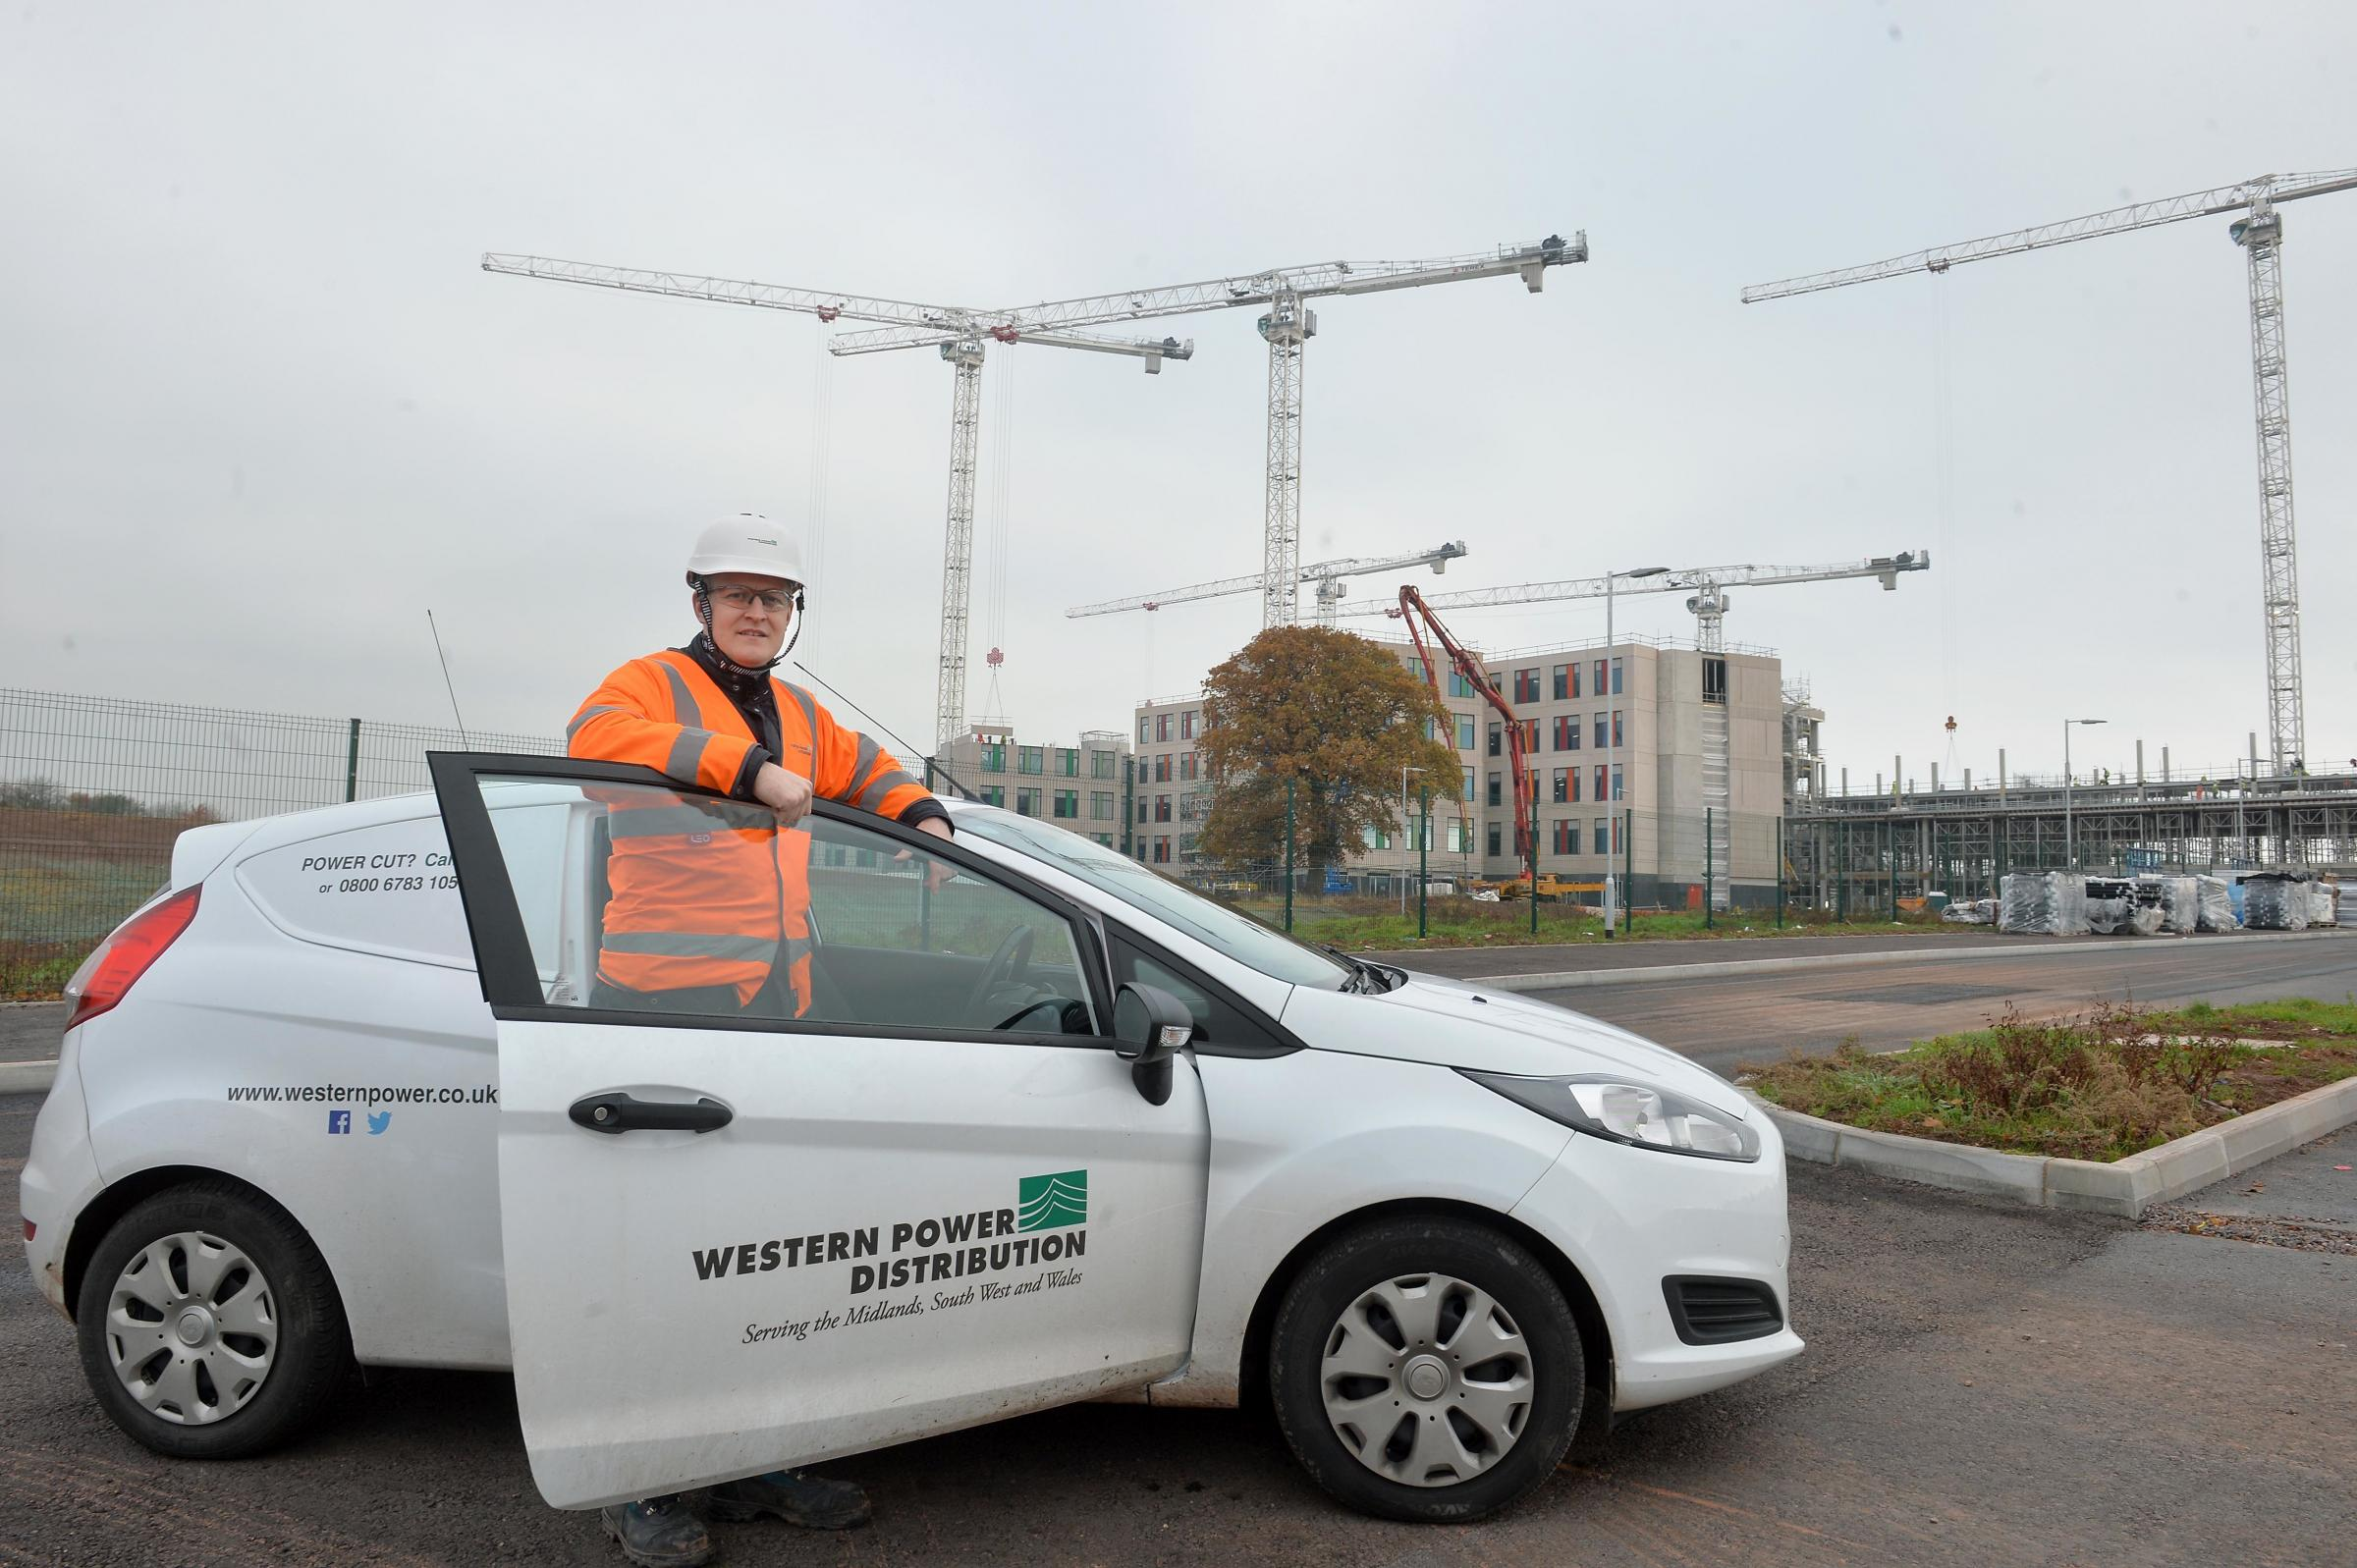 WPD Planner Rhys James on the site of the new Grange University Hospital Critical Care Unit that will serve the people of Gwent